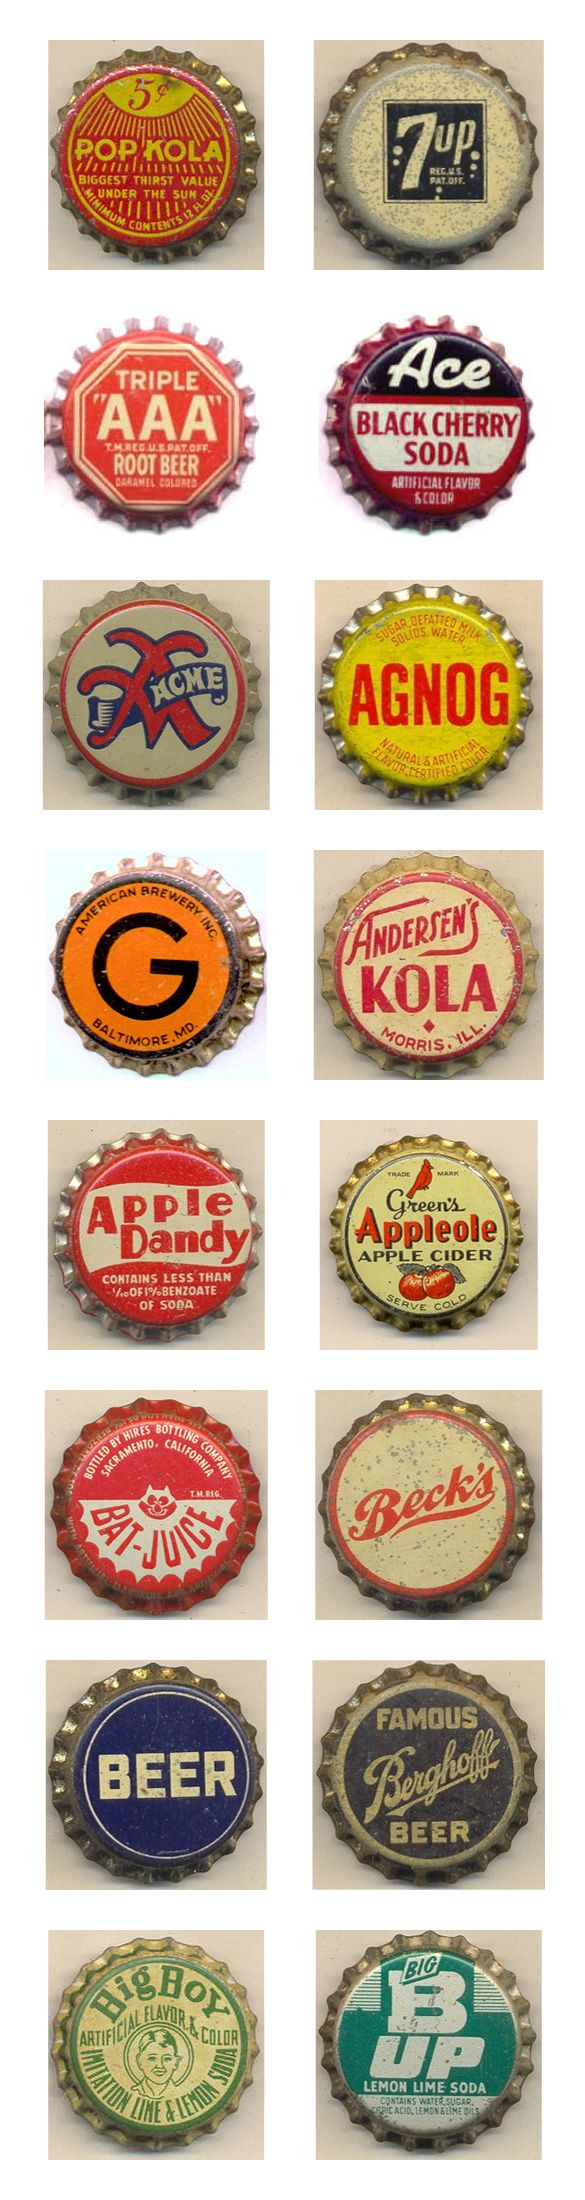 "vintage bottle caps - from Kenny Yohn's ""The Bottle Cap Man"" collection"